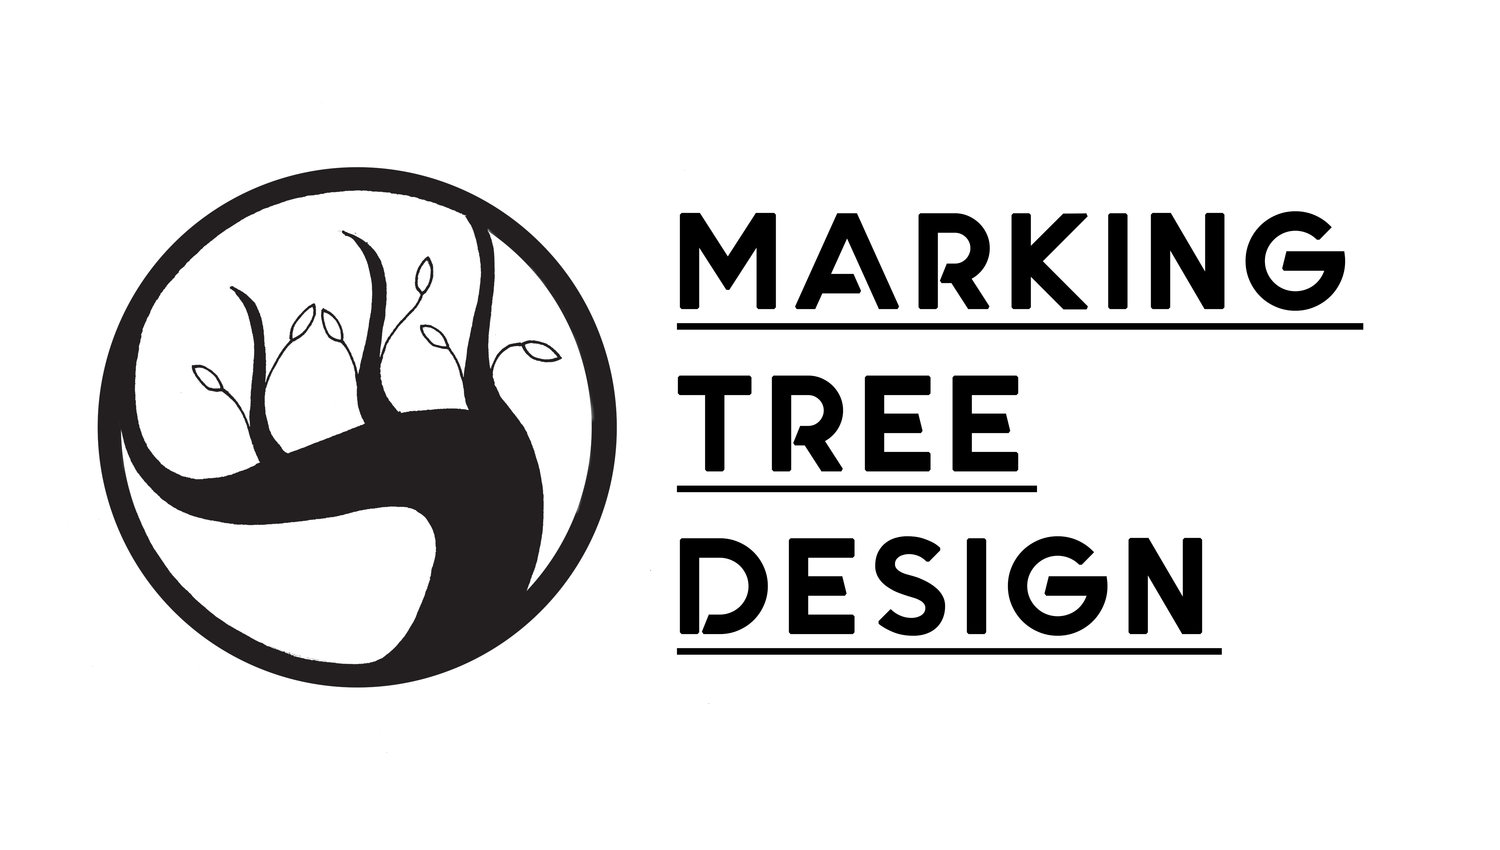 Marking Tree Design